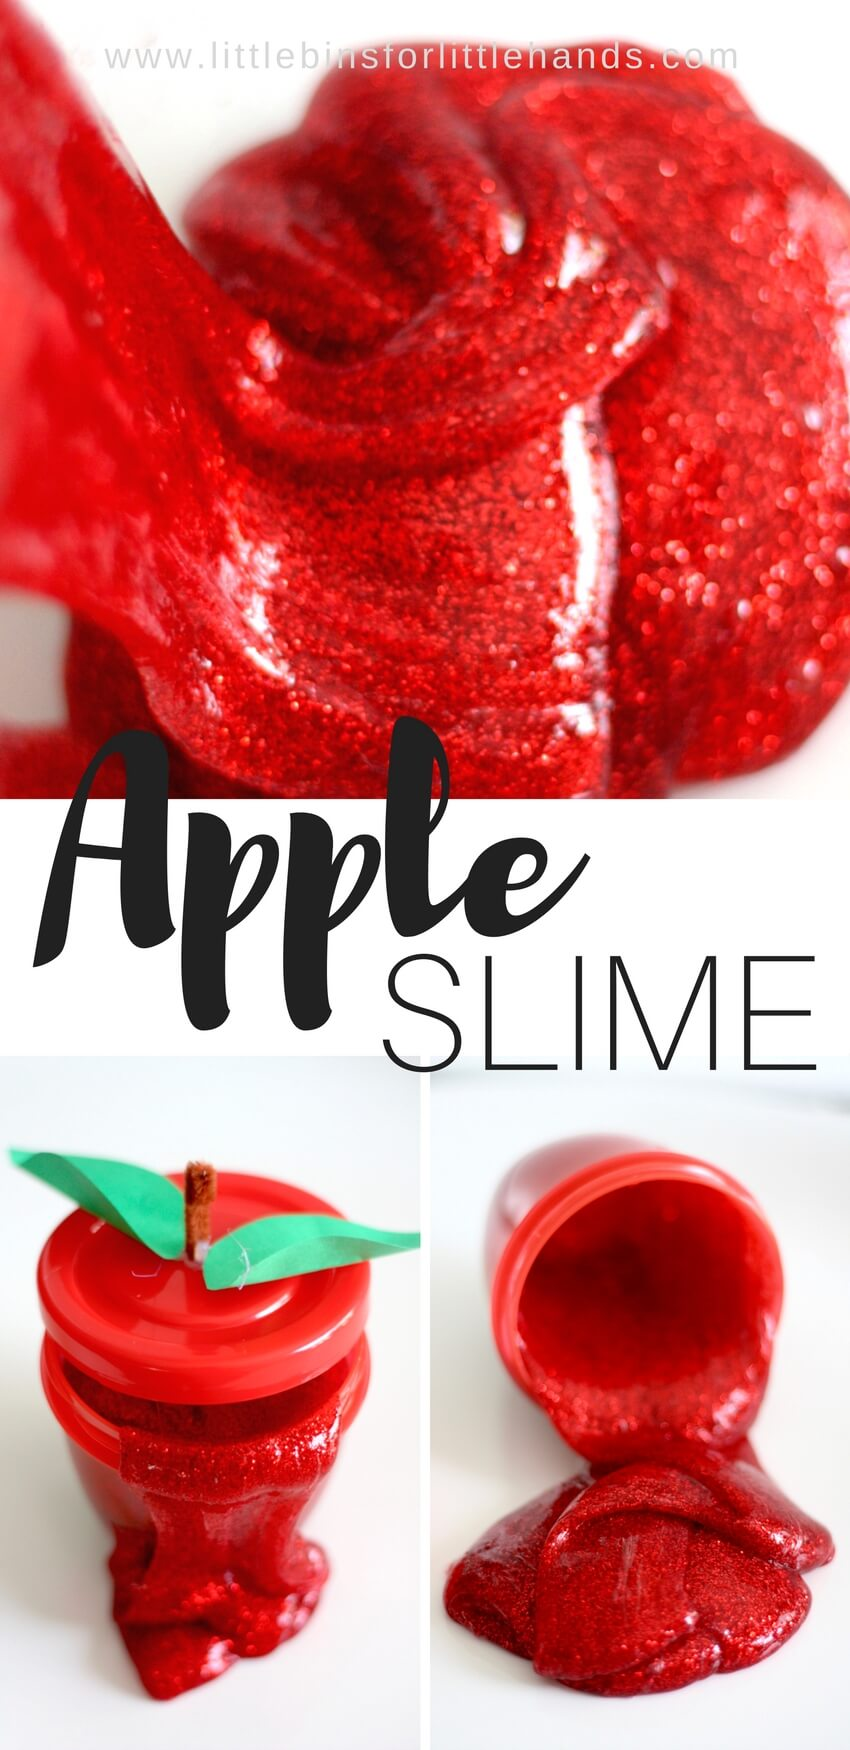 We are waiting for the crispy, juicy apples of fall to roll around again. I don't know about you, but we have a tough time finding tasty apples here at the end of summer. So while we wait and dream for lush apple orchards to pick whatever we want, we decided to make an apple theme slime recipe instead. Making homemade slime is super simple science and sensory play and even better with a fun theme!